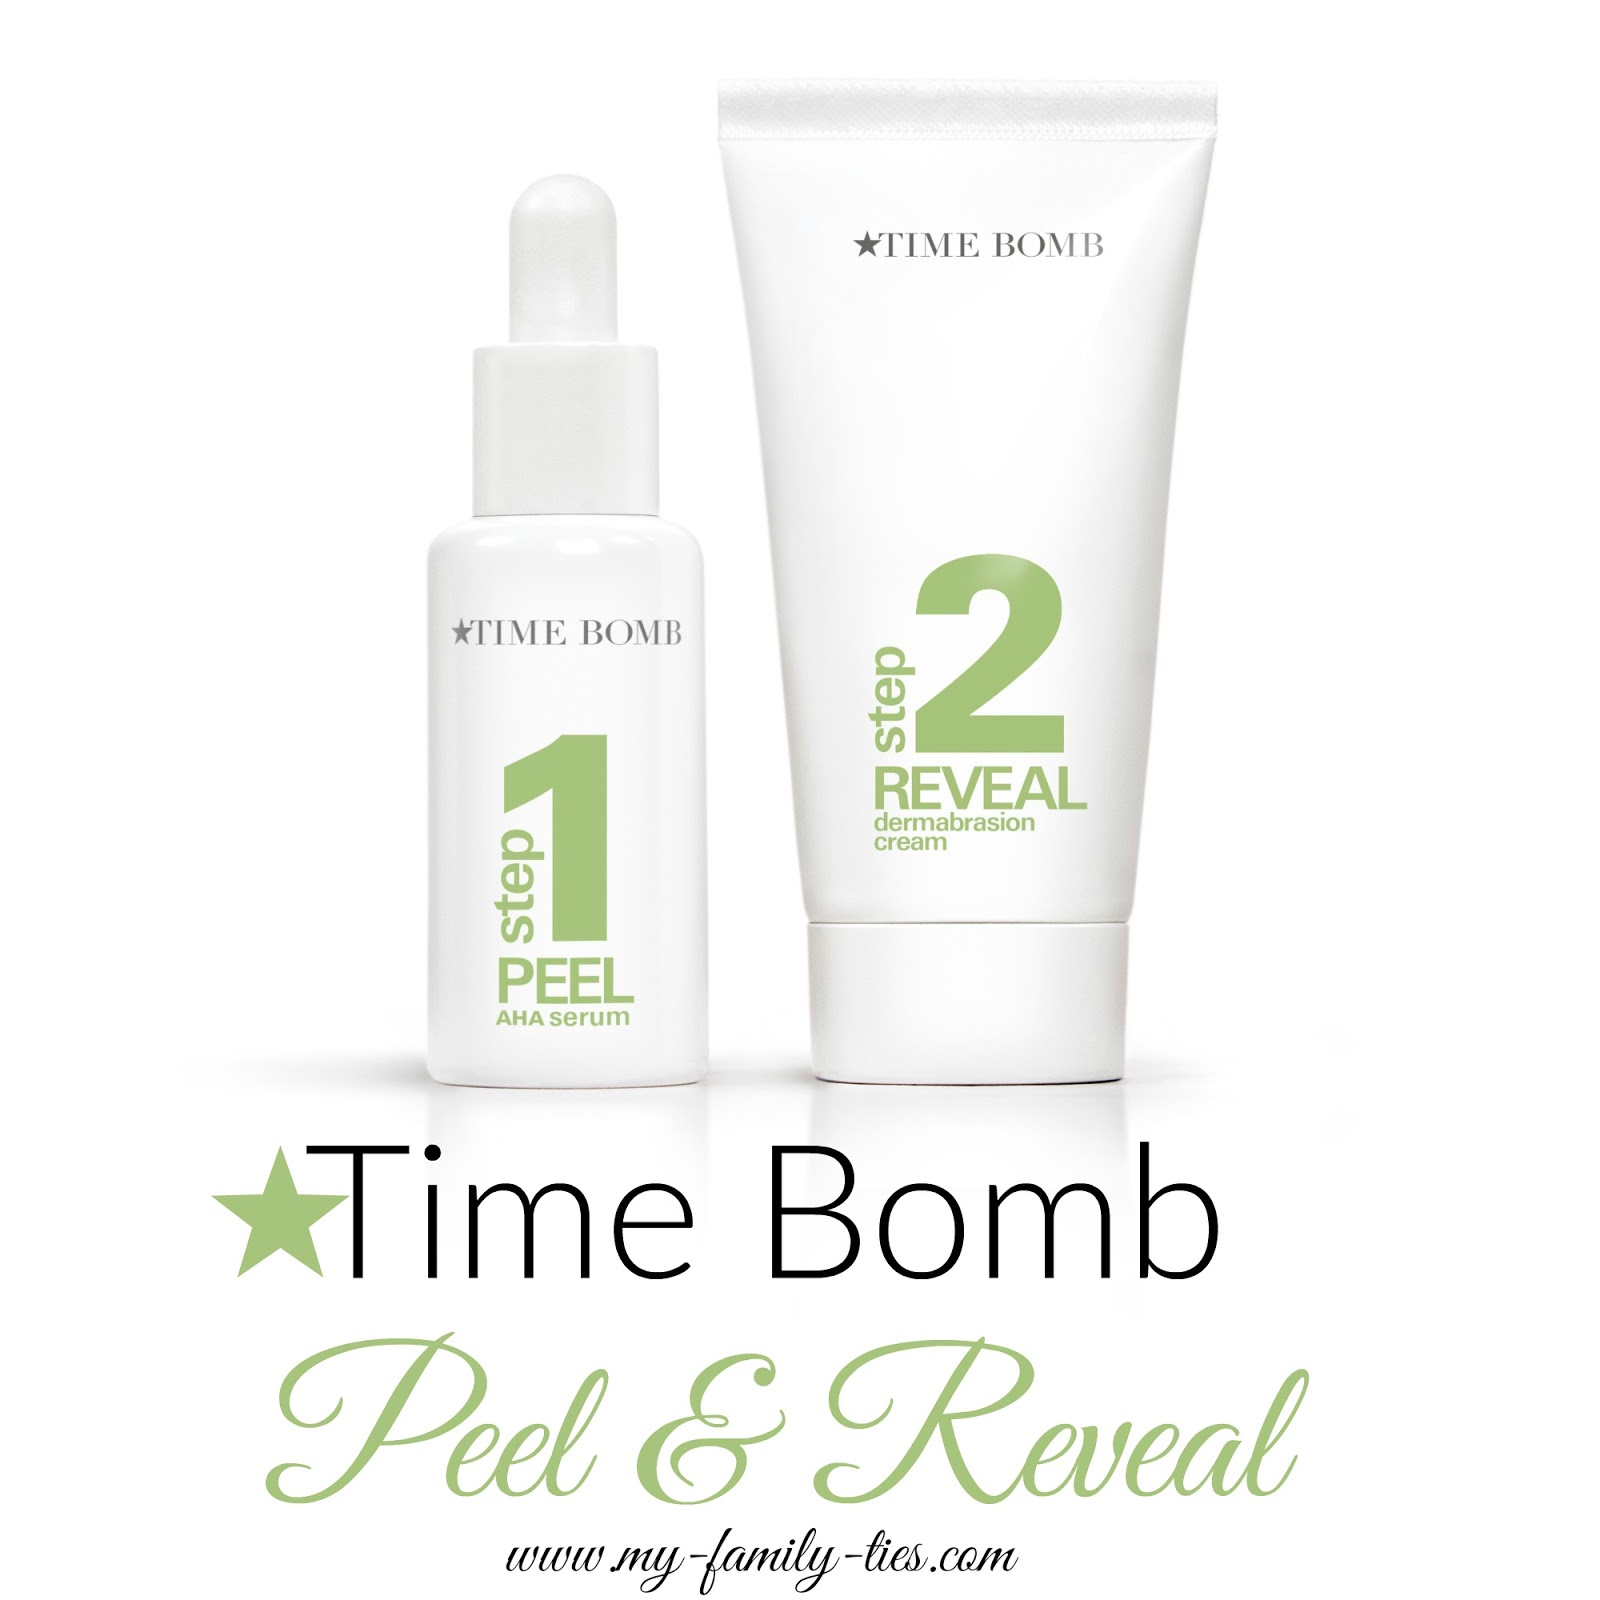 Time-Bomb-Throwback-Thursday-Overnight-Peel-And-Reveal-Kit-An-Overnight-Treatment-for-Exfoliated-skin-www.my-family-ties.com-My-Family-Ties-Blog